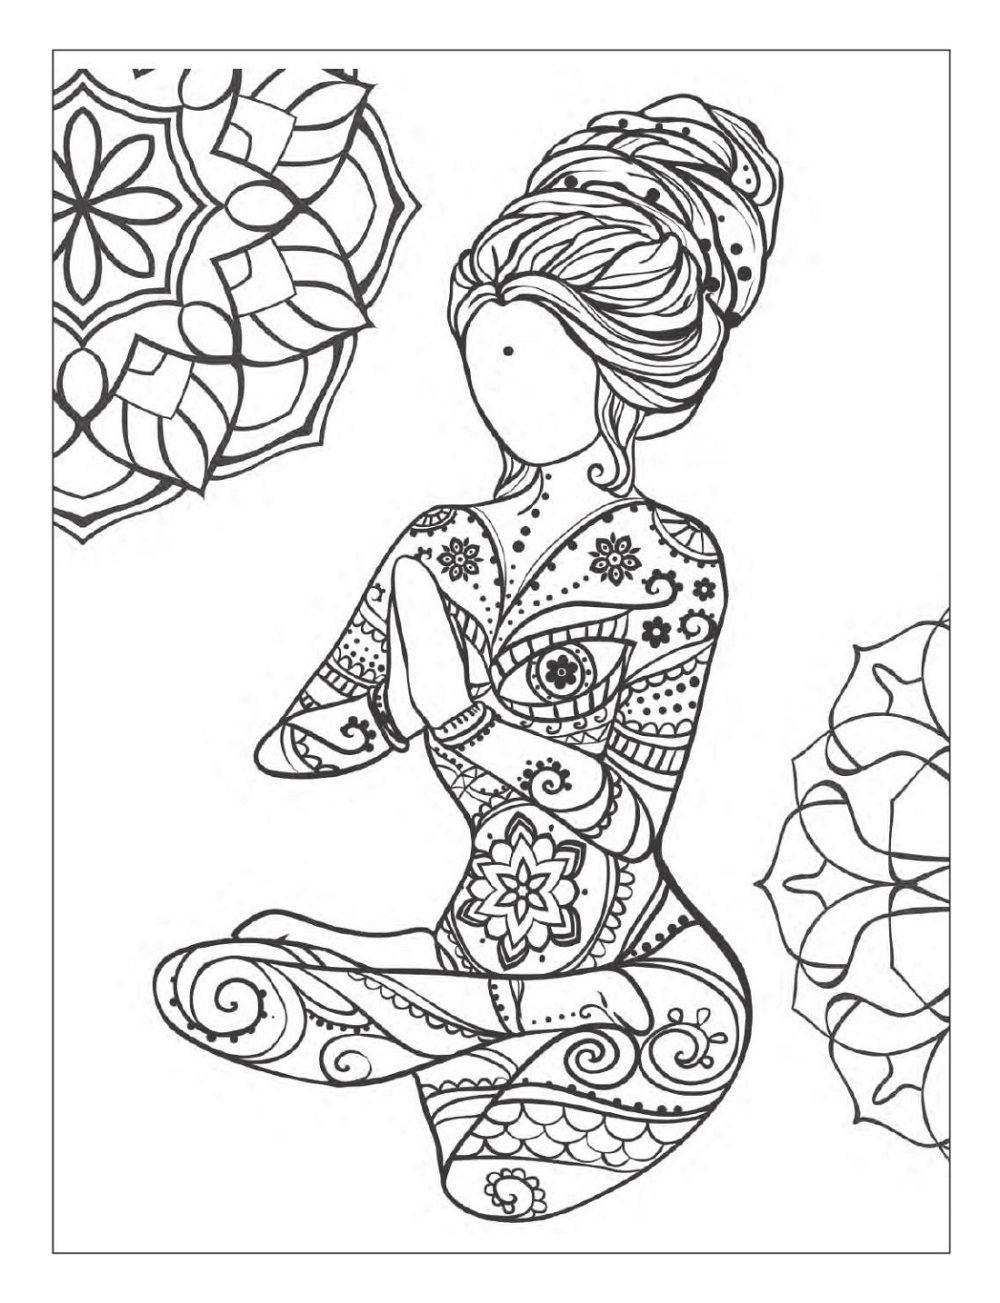 Mindfulness And Yoga Coloring Pages 101 Activity Mindfulness Colouring Coloring Pages Coloring Pages For Kids